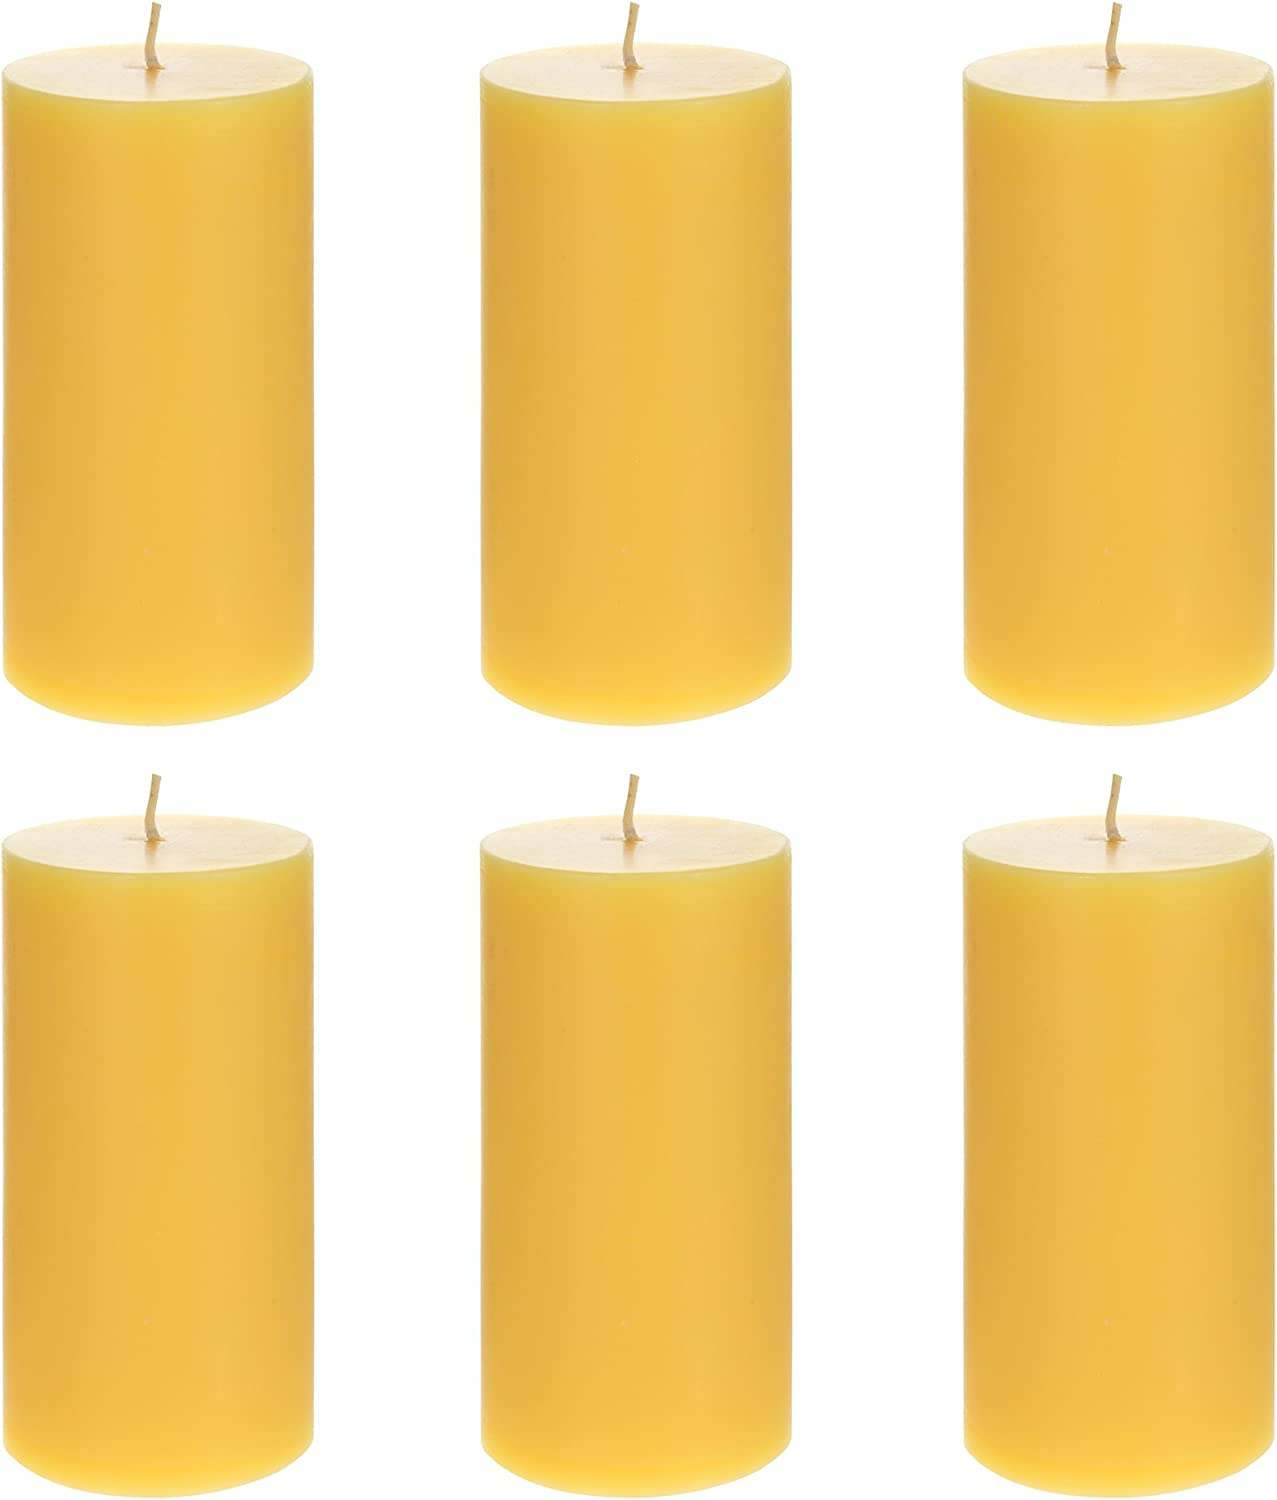 Mega Candles 6 pcs Citronella Round P Max 69% OFF Hand Candle Poured Pillar Ranking TOP20